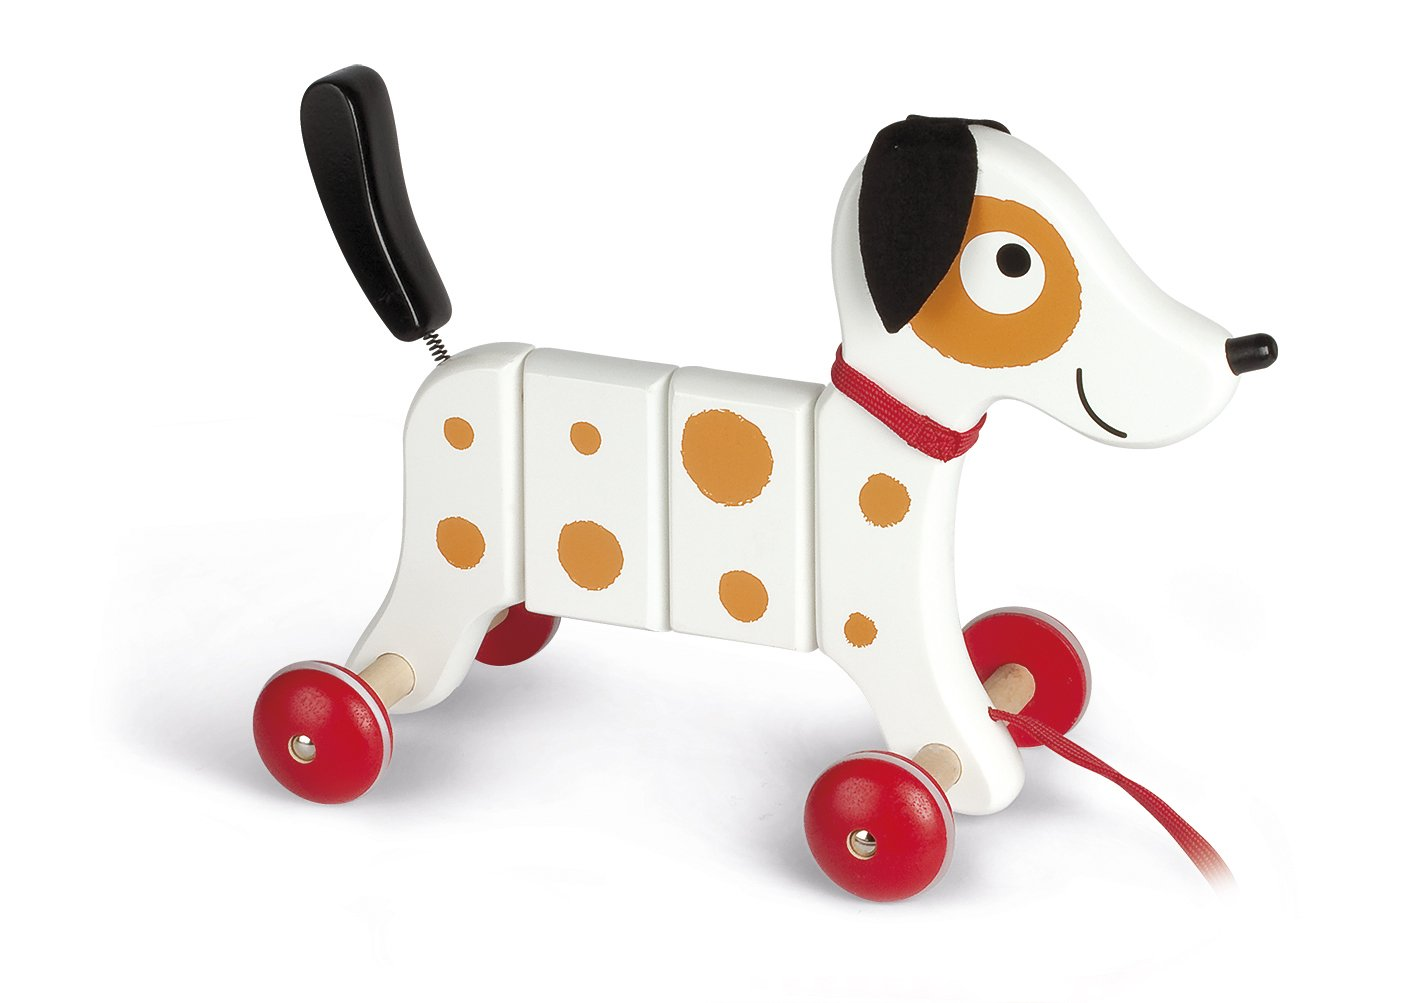 Janod Crazy Rocky Dog Pull Along Early Learning and Motor Skills Toy Made of Cherry Wood for Ages 12 Months+